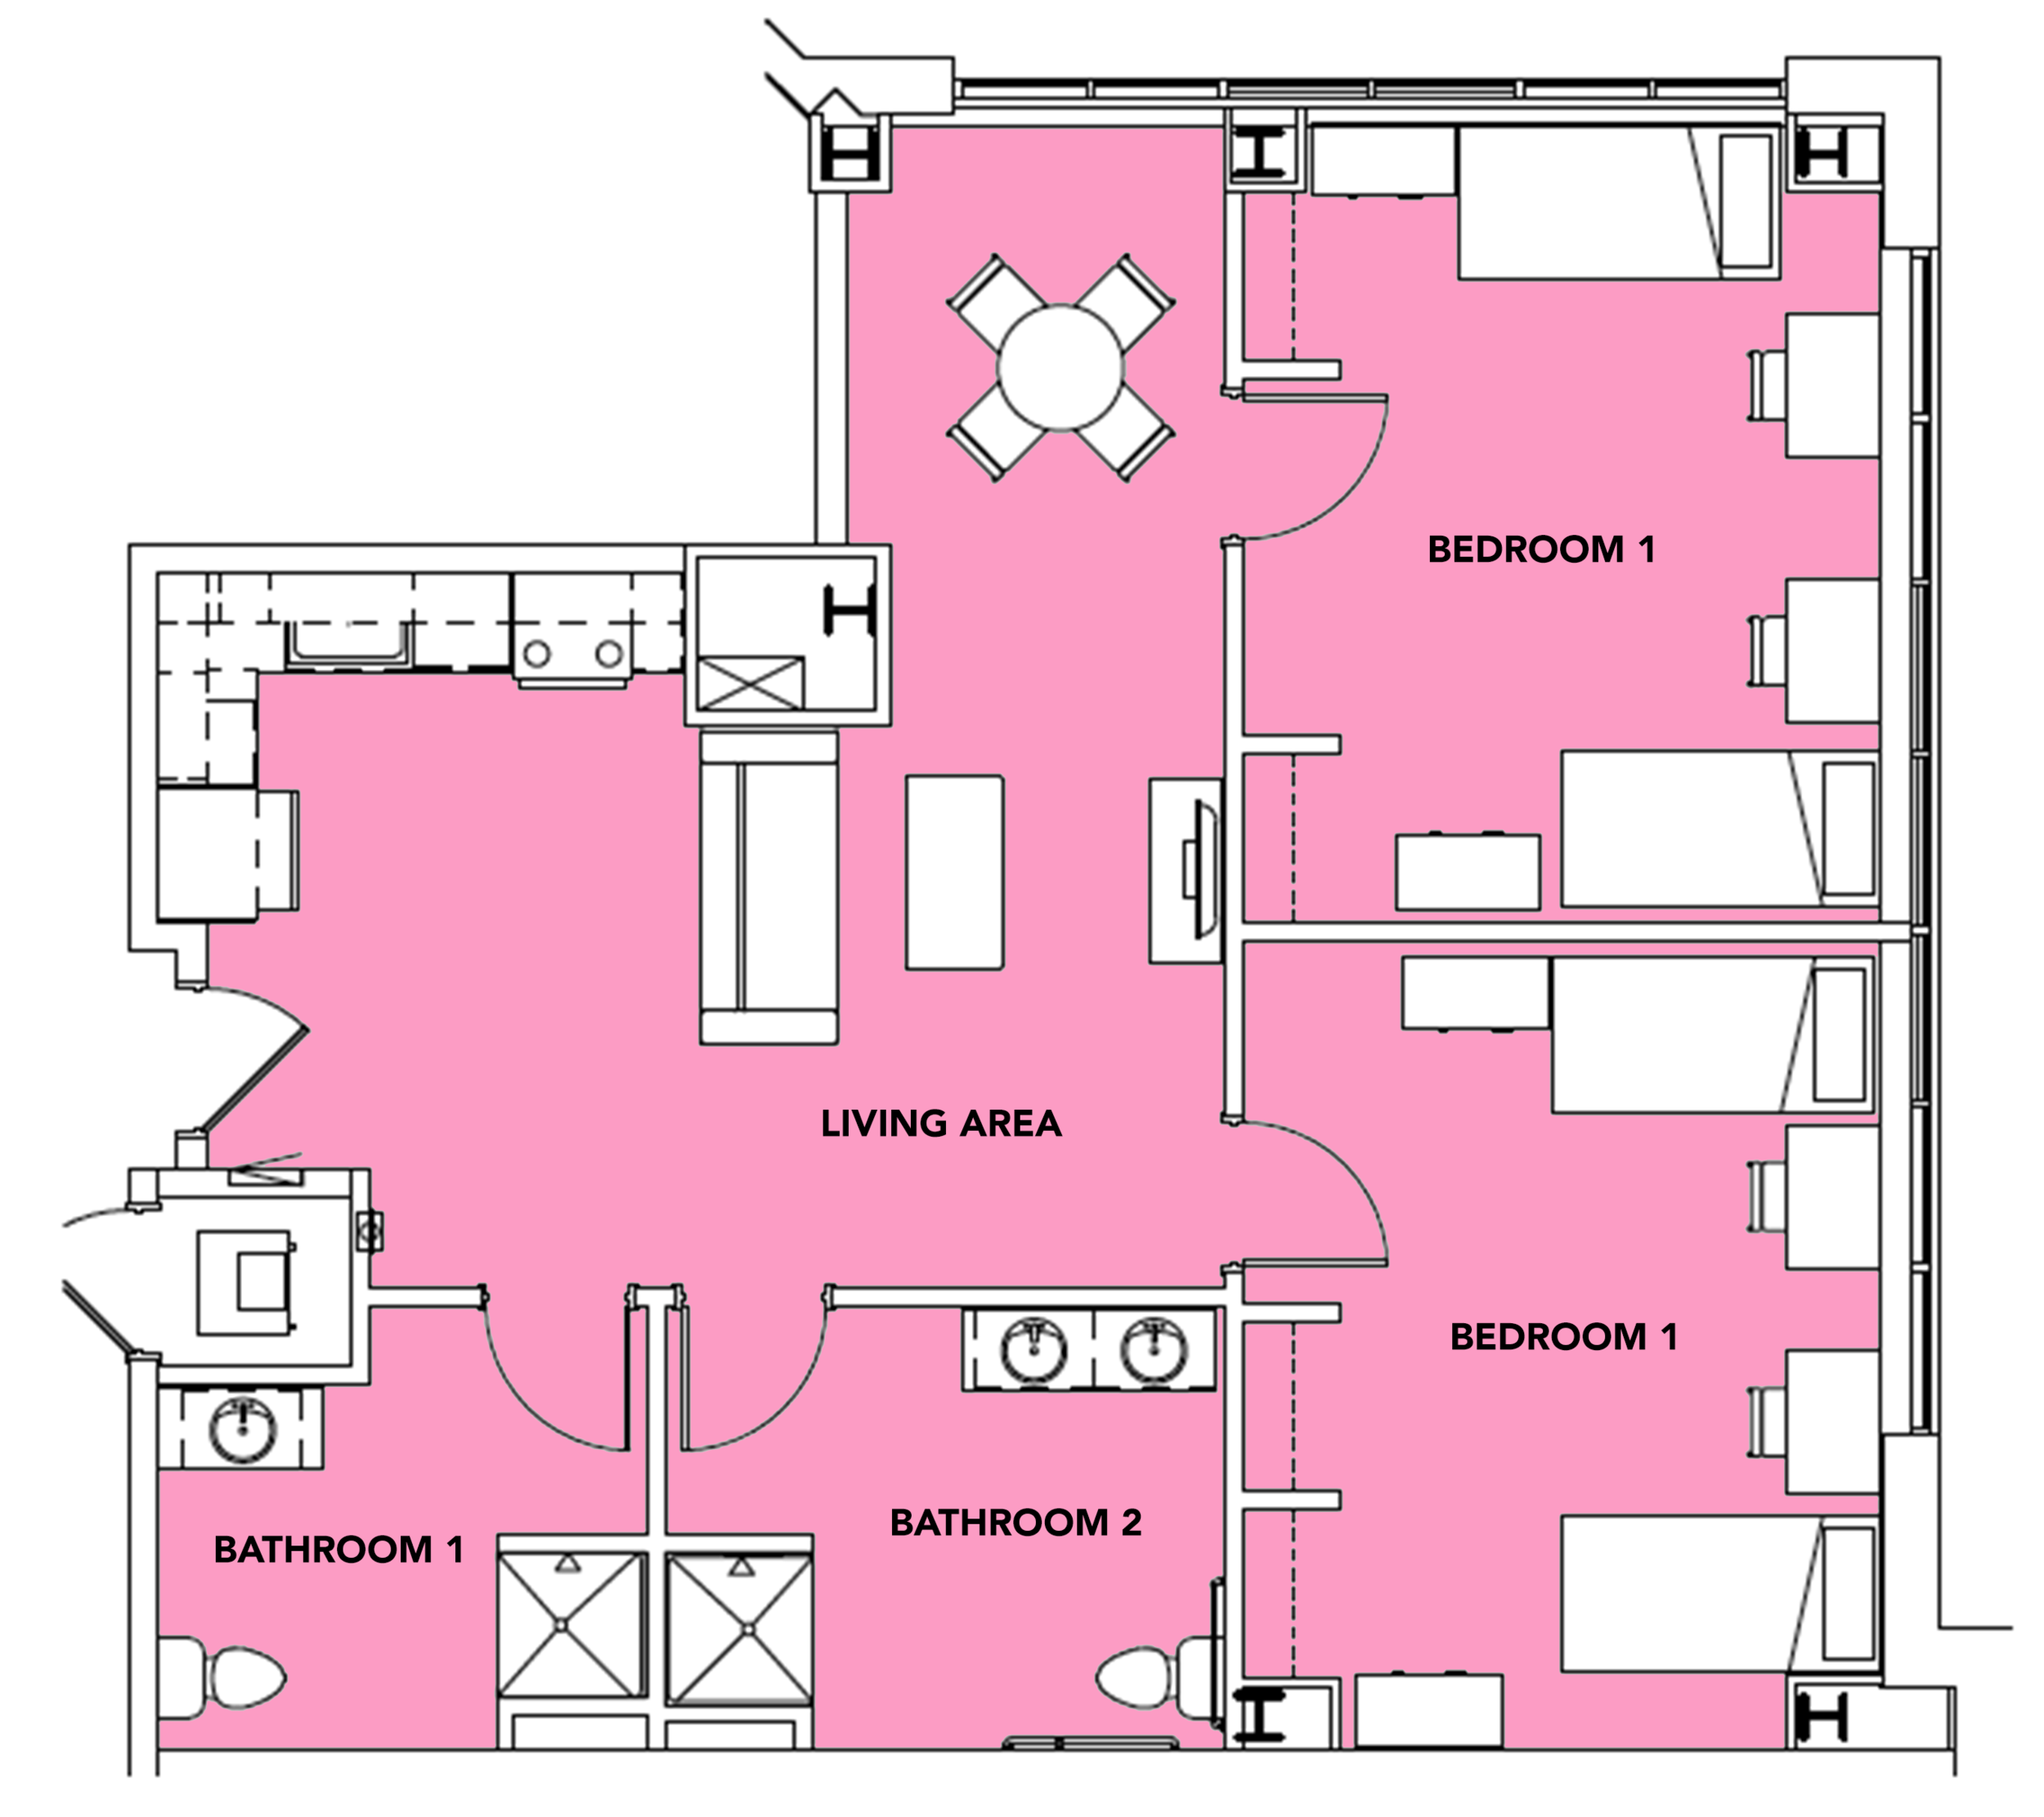 4 Students -  2 bed, 2 bath